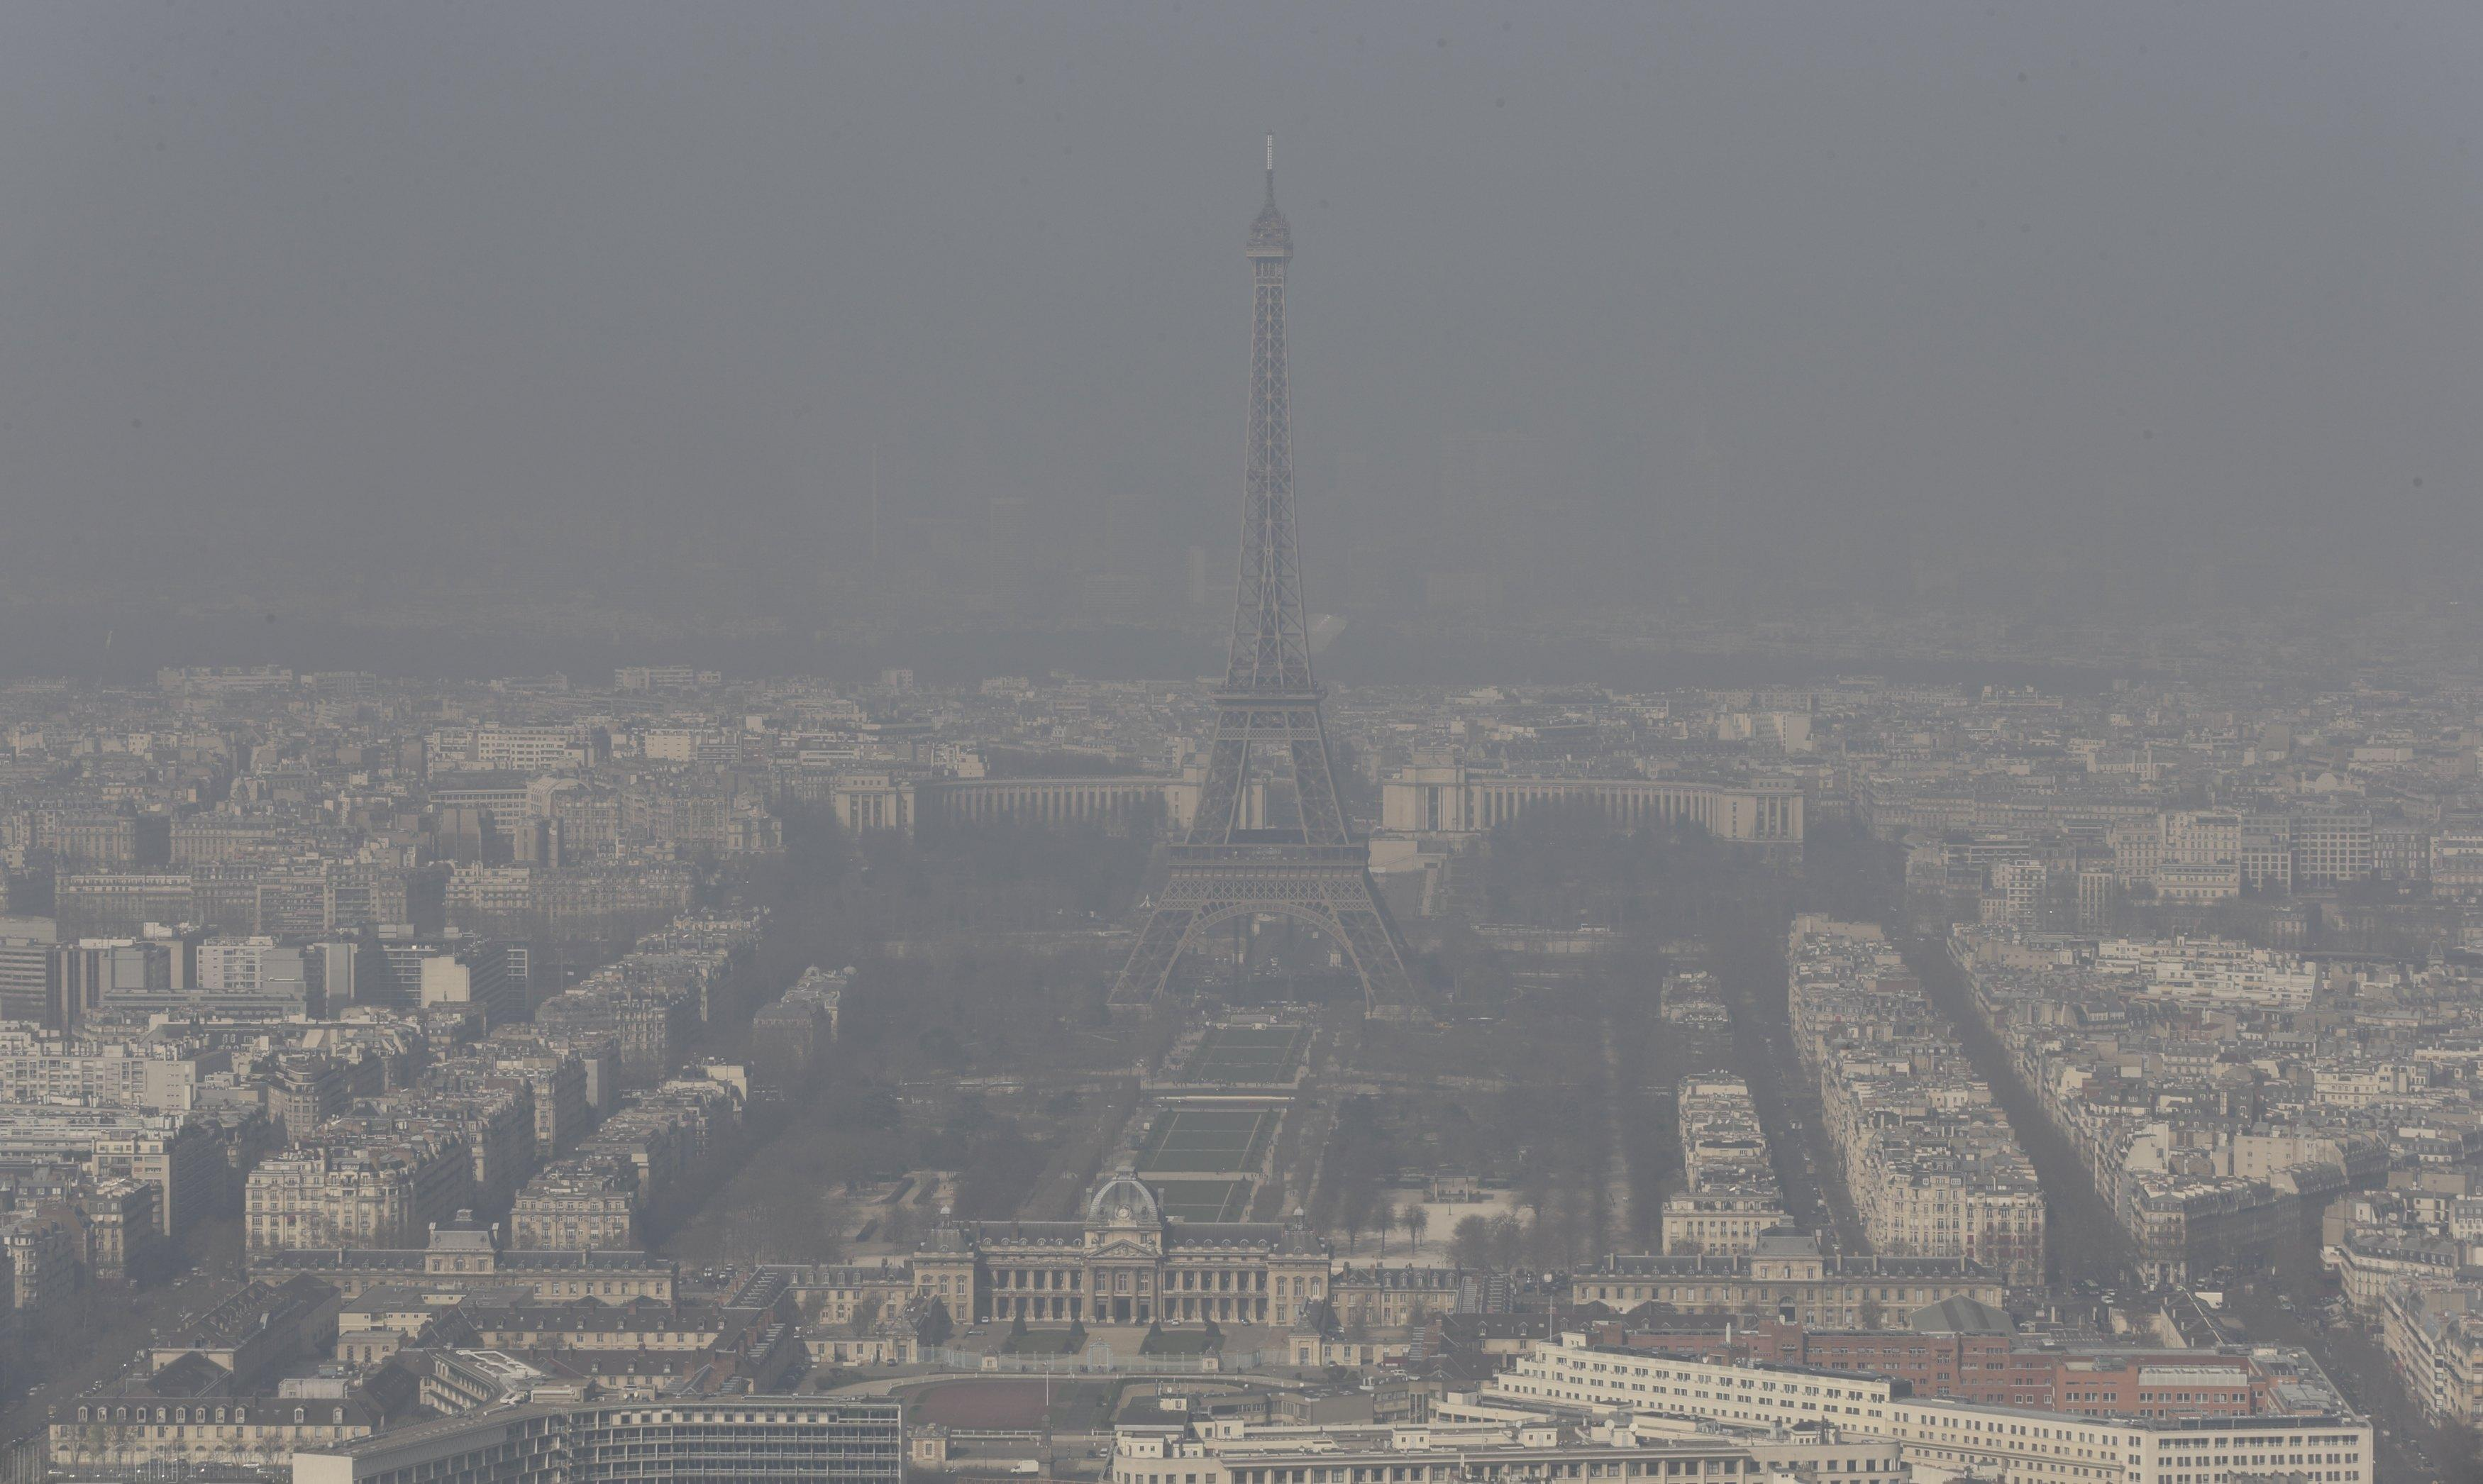 Paris Pollution Haze March 13